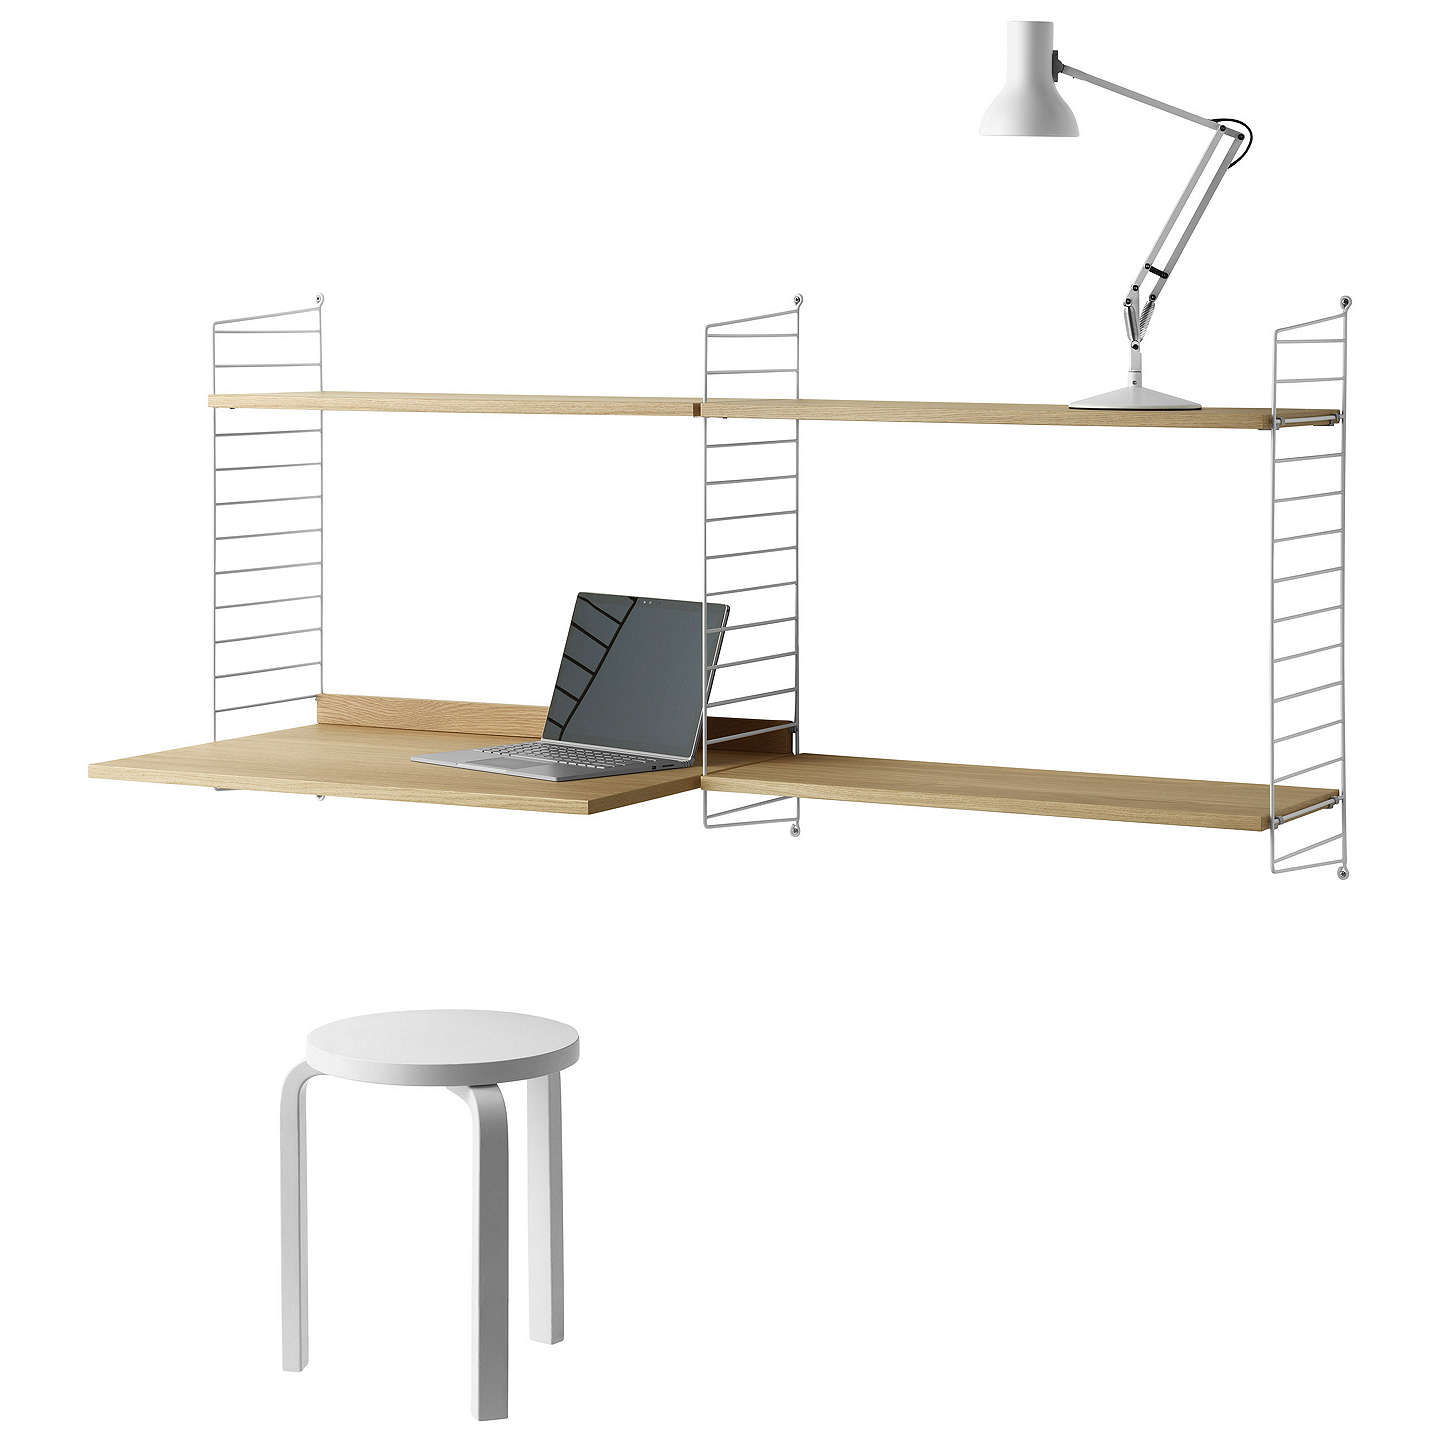 maple drawer inspiration furniture tall table wood and brown computer with mobile shelves desks light stunning photo desk keyboad